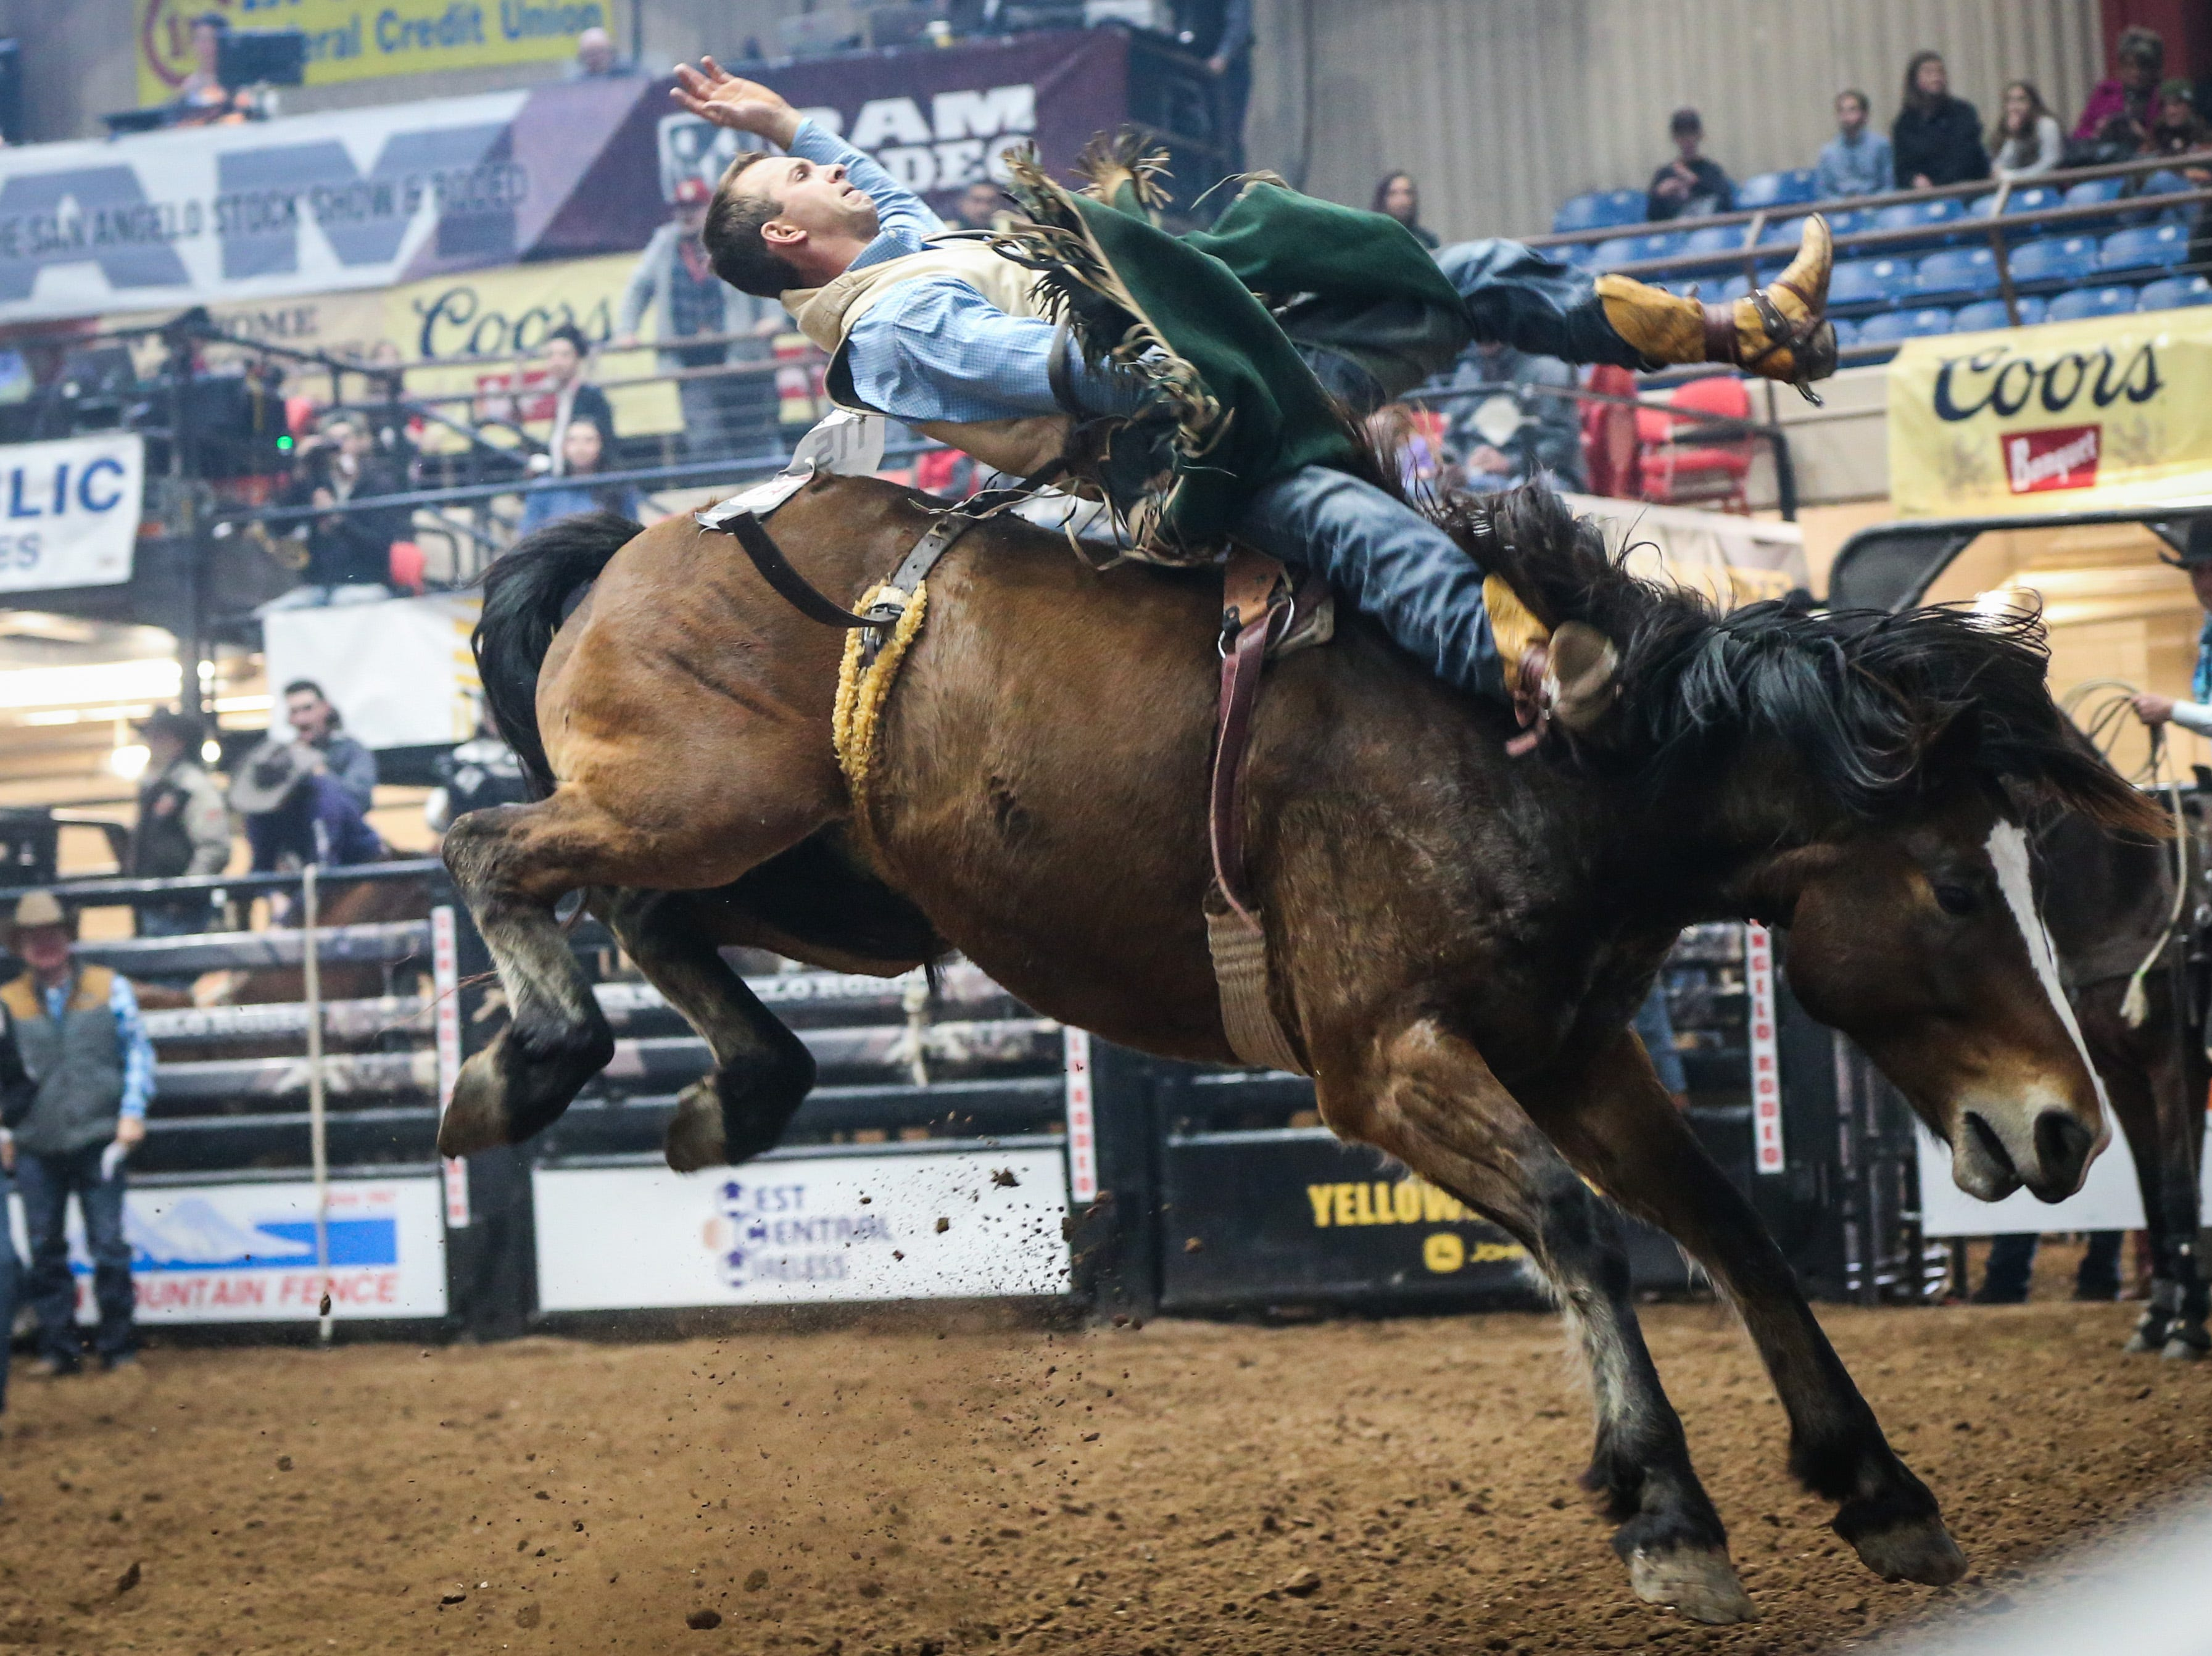 Cody Cabeen rides bareback on Shady Nights during the San Angelo Stock Show & Rodeo matinee show Saturday, Feb. 9, 2019, at Foster Communications Coliseum.